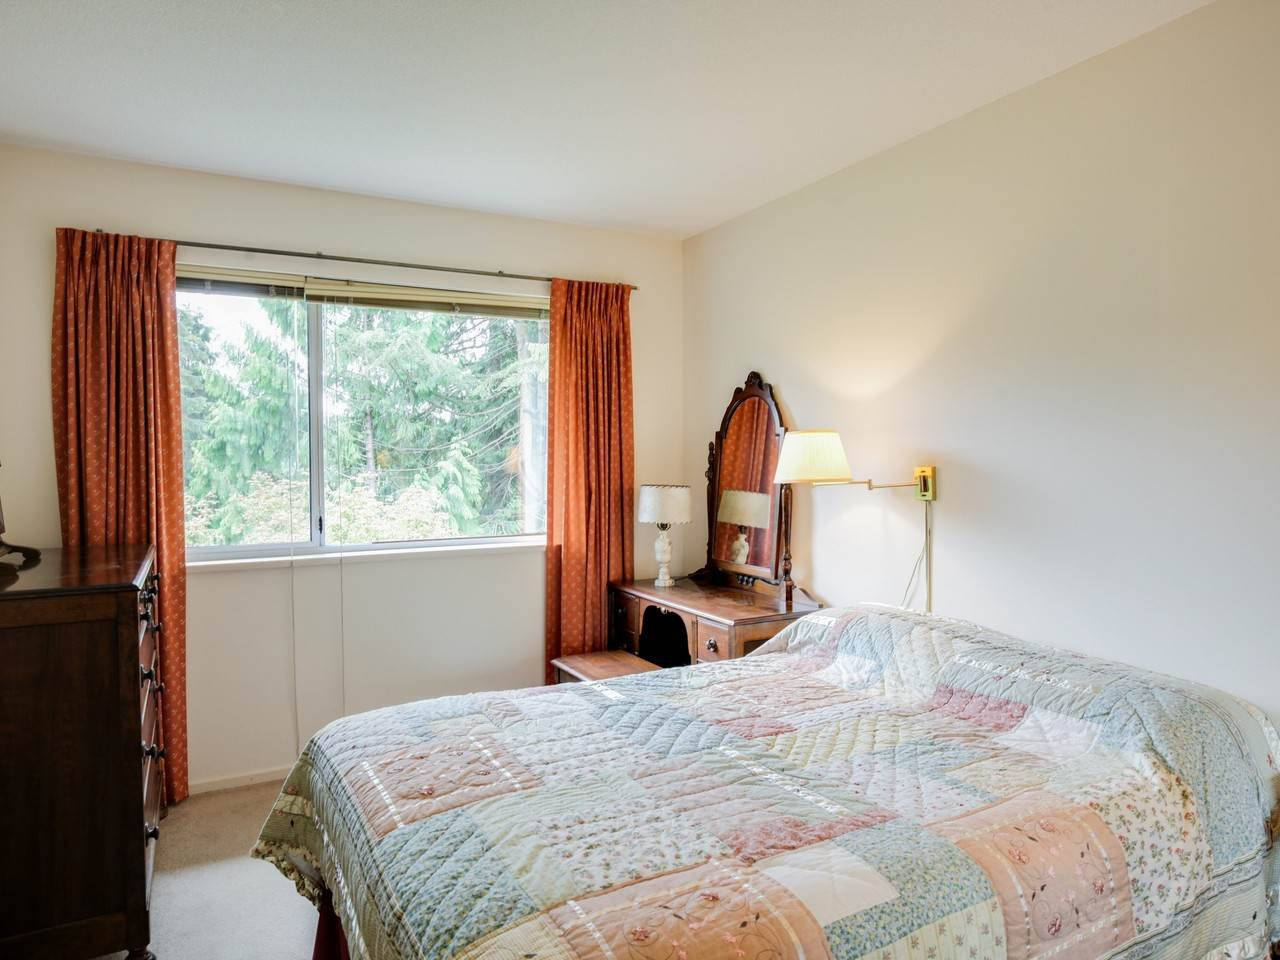 Photo 10: Photos: 4120 LYNN VALLEY ROAD in North Vancouver: Lynn Valley House for sale : MLS®# R2100168